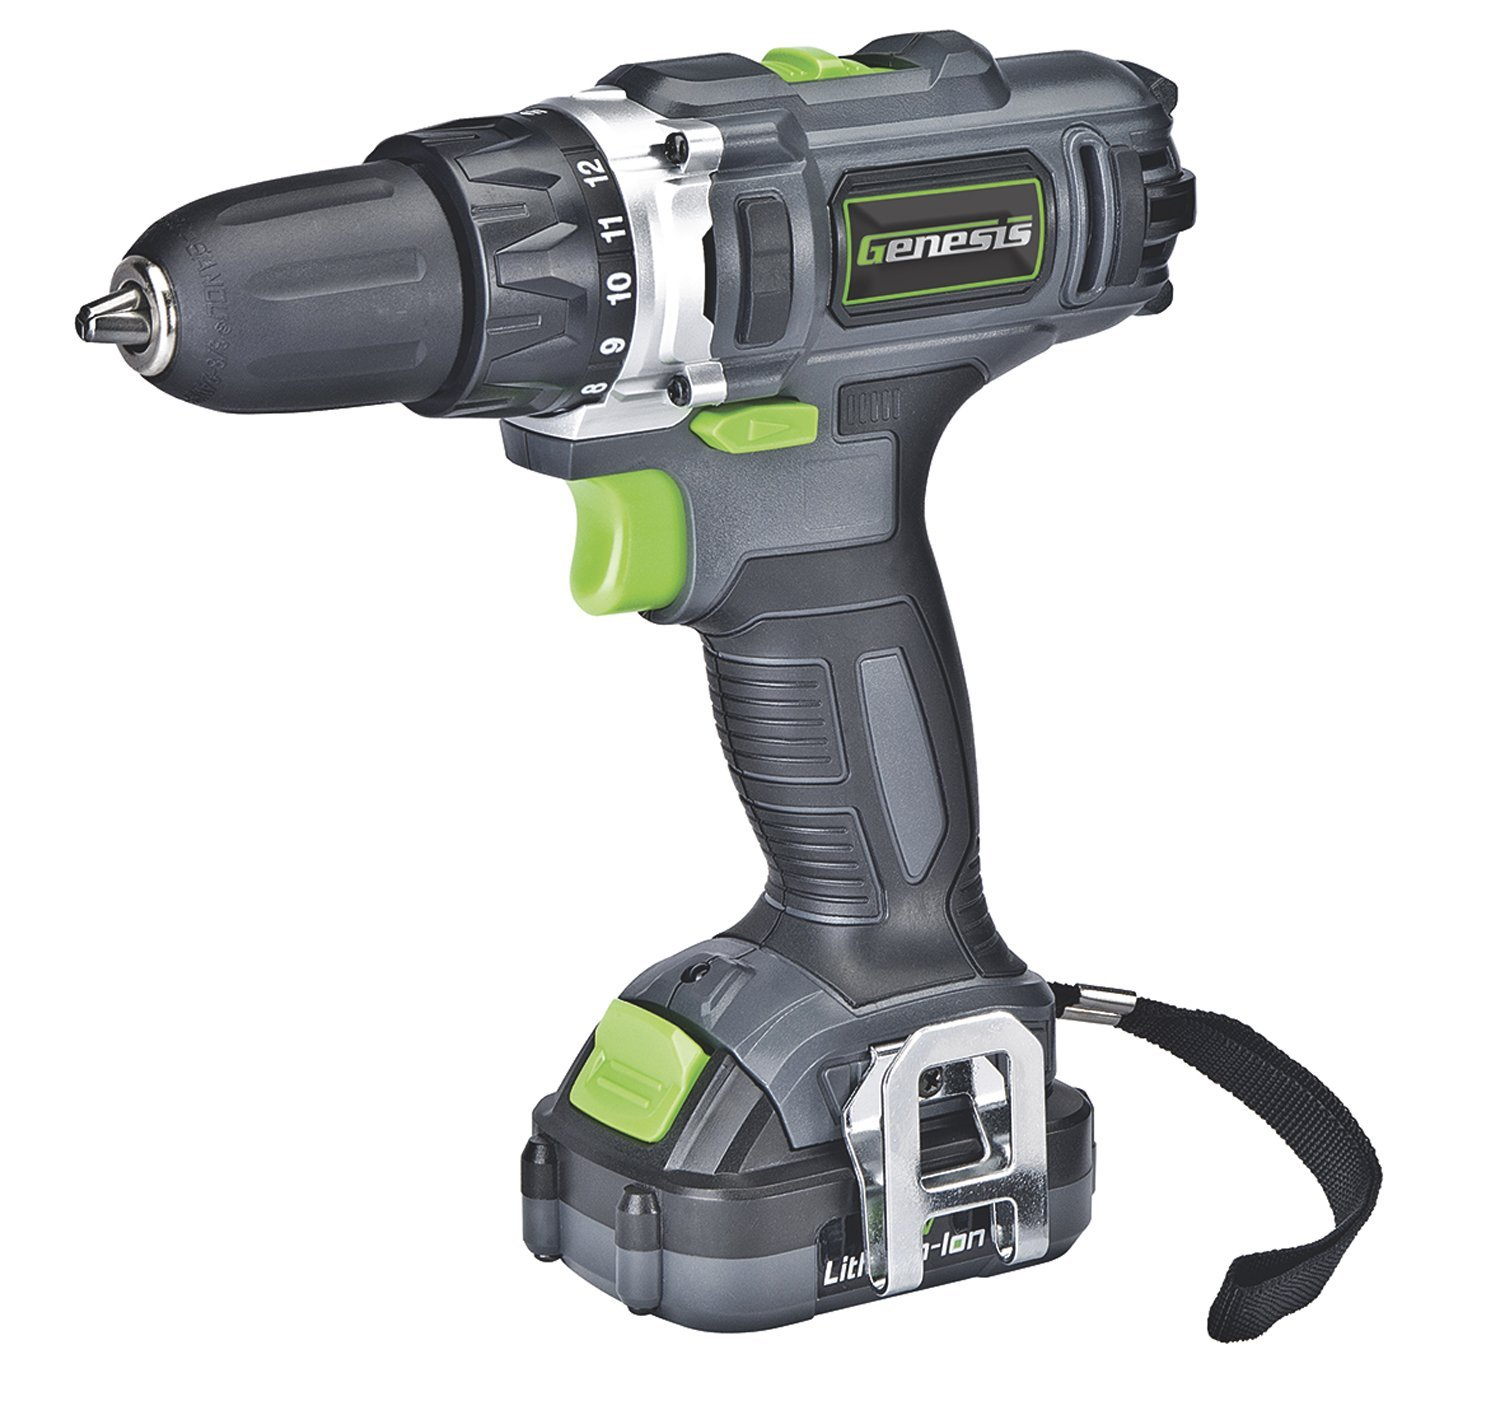 Amazon.com: Genesis GLCD122P 12V Lithium-Ion 2-Gear Variable Speed ...